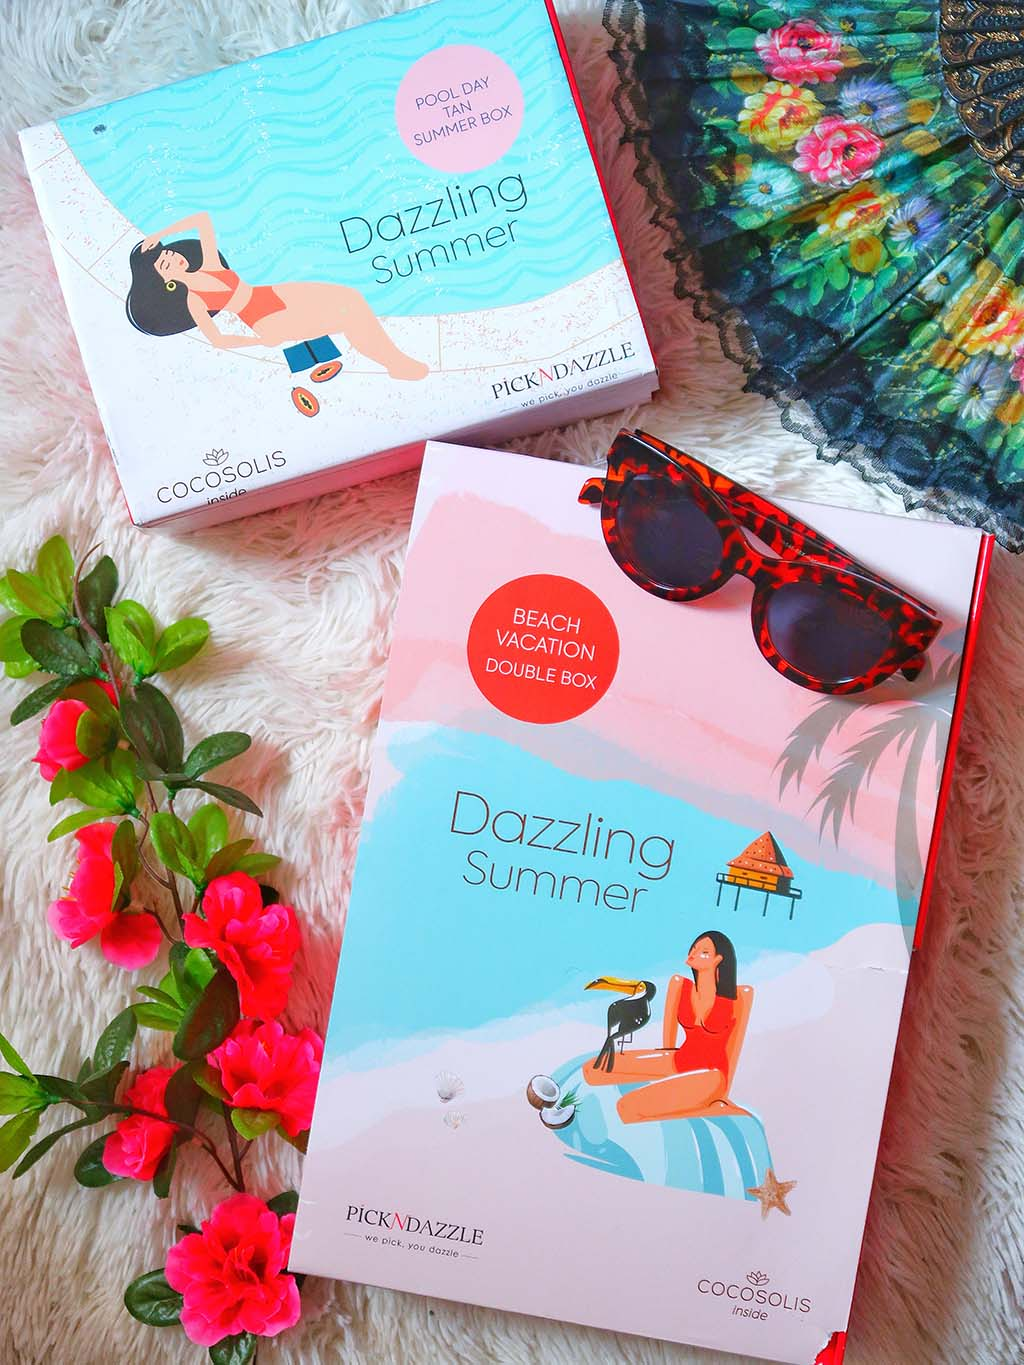 unboxing pick n dazzling summer beauty boxes cutii cutie frumusete pool day beac vacantion double box